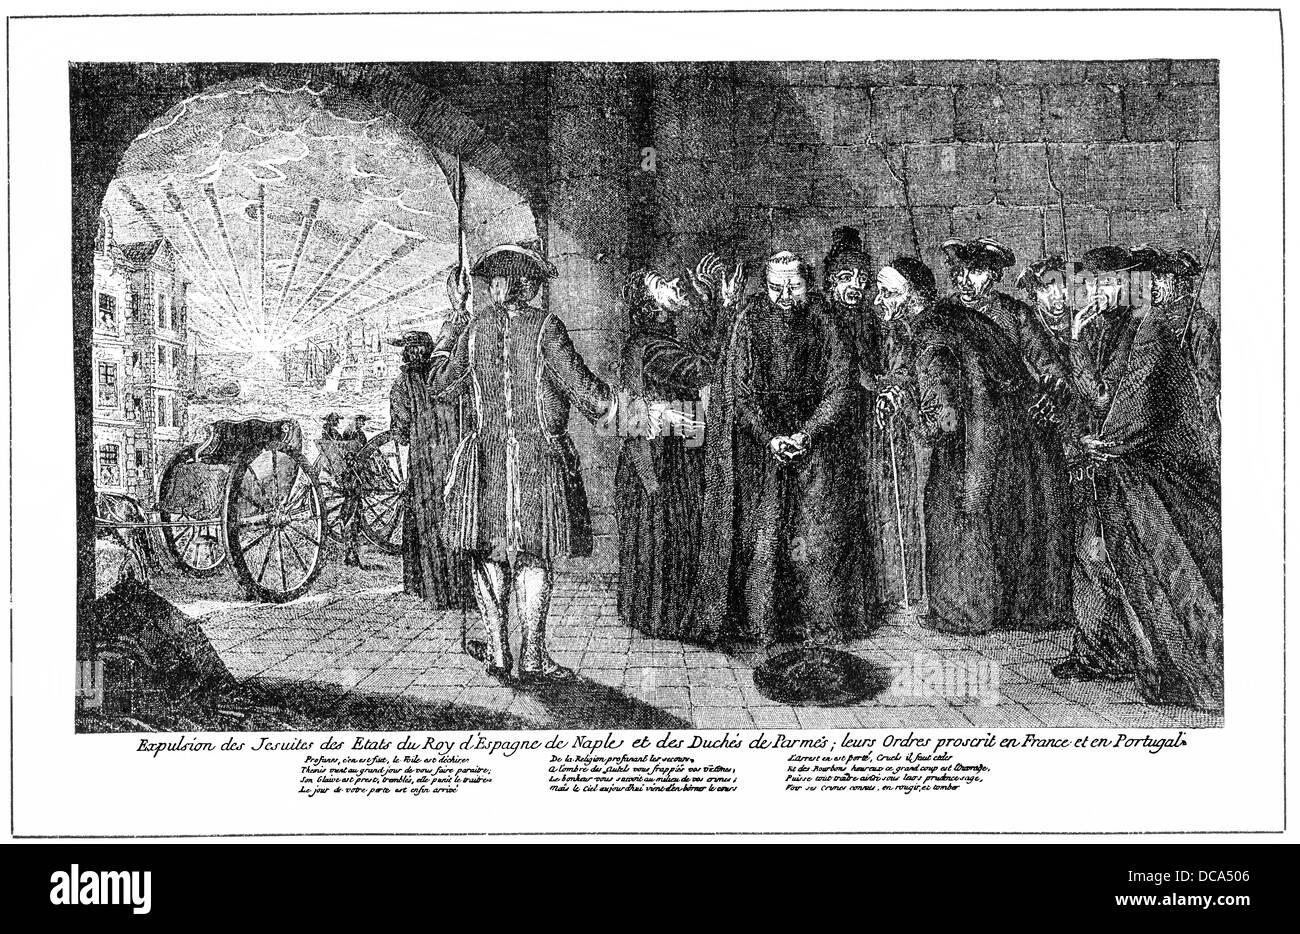 pamphlet from the 16th Century, the expulsion of the Jesuits from Spain, Portugal and Naples - Stock Image